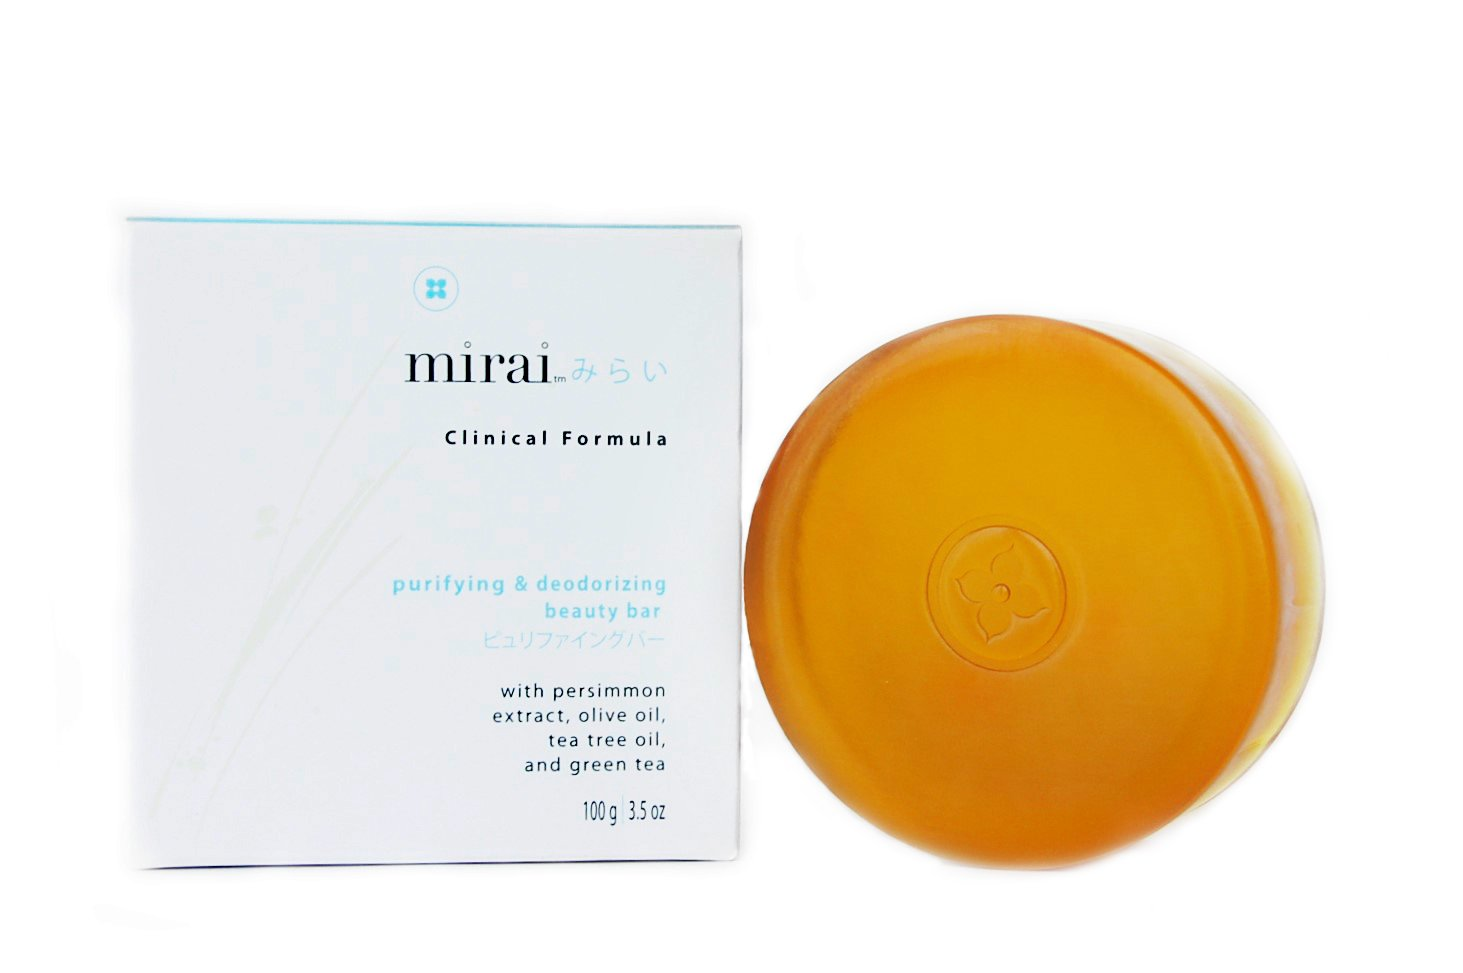 Purifying & Deodorizing Soap Bar | Handmade Soap with Japanese Persimmon Extract to Help with Nonenal Body Odor Associated with Aging | Artisanal Japanese Soap for Men & Women | 4 bars 100g each by Mirai Clinical (Image #3)